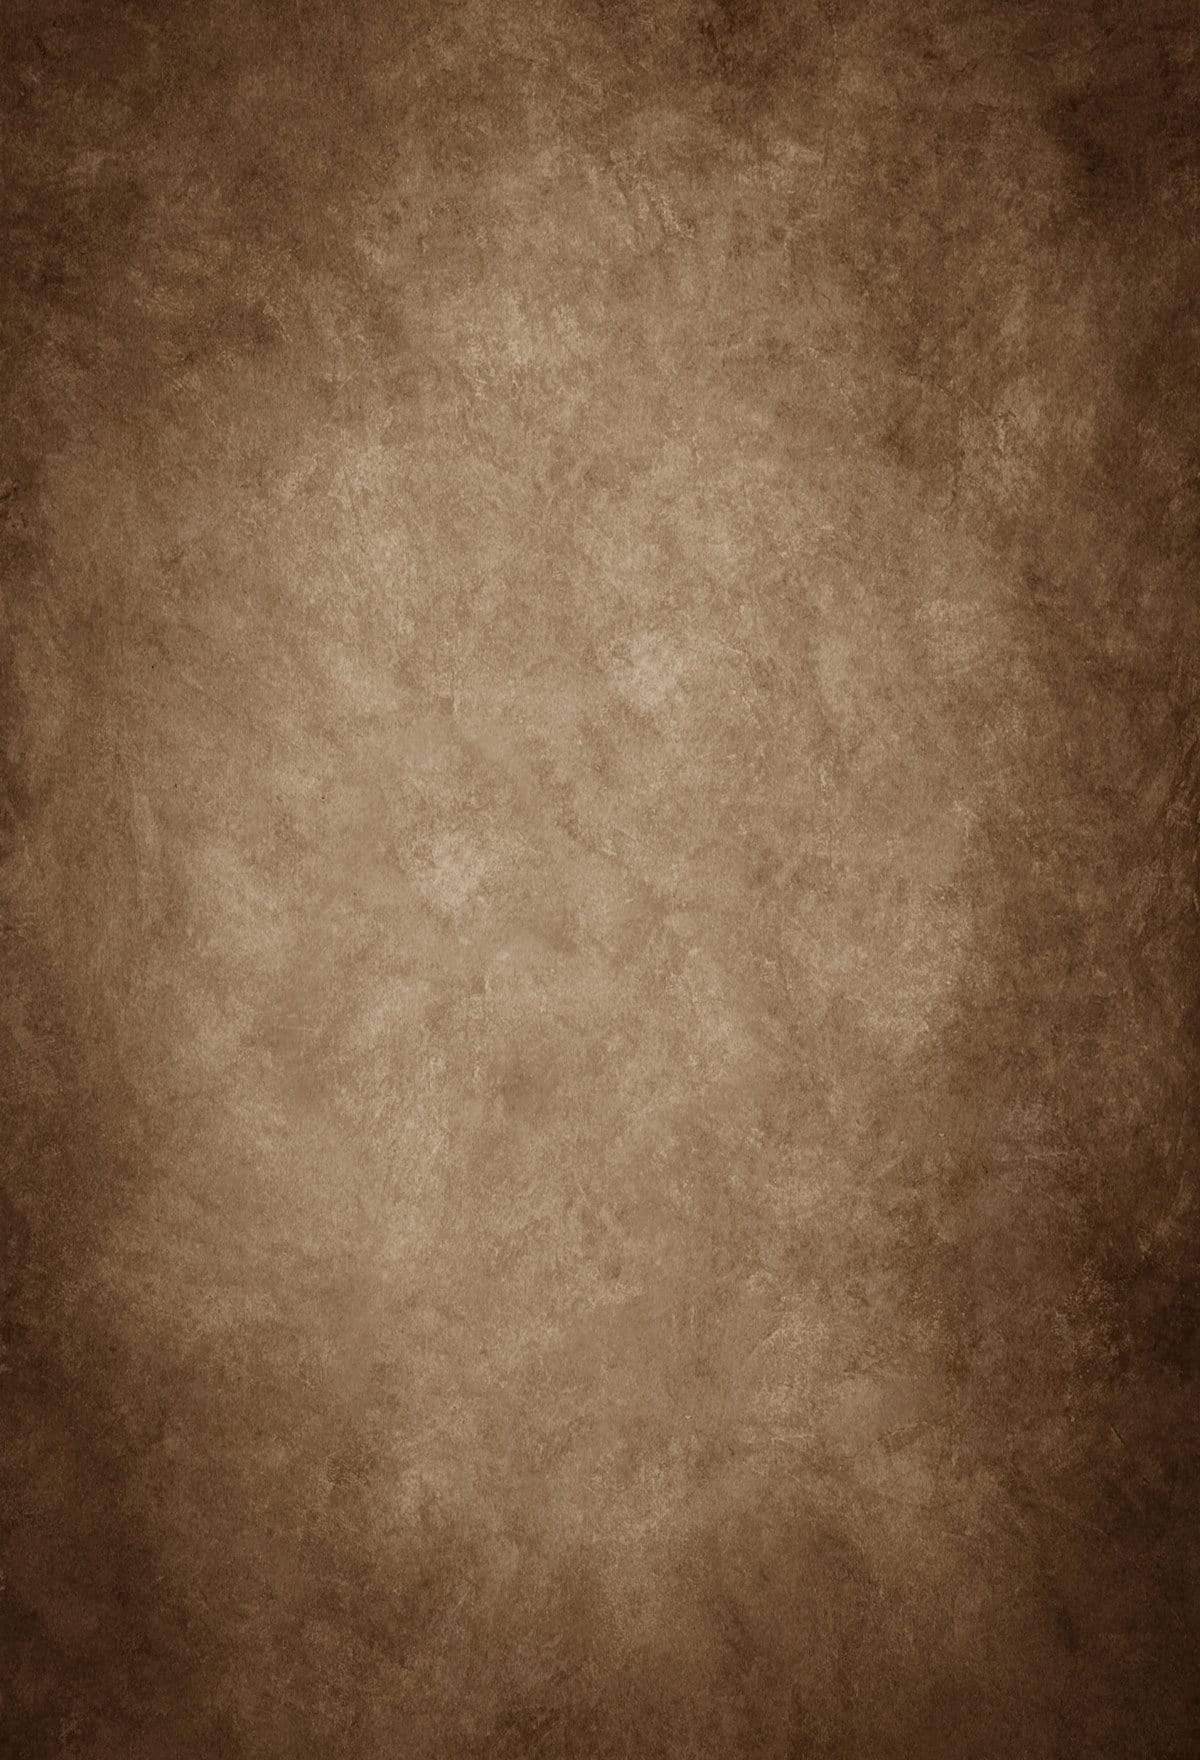 Load image into Gallery viewer, Katebackdrop£ºKate Old Master Abstract Texture Dark Brown Backdrop for Photography